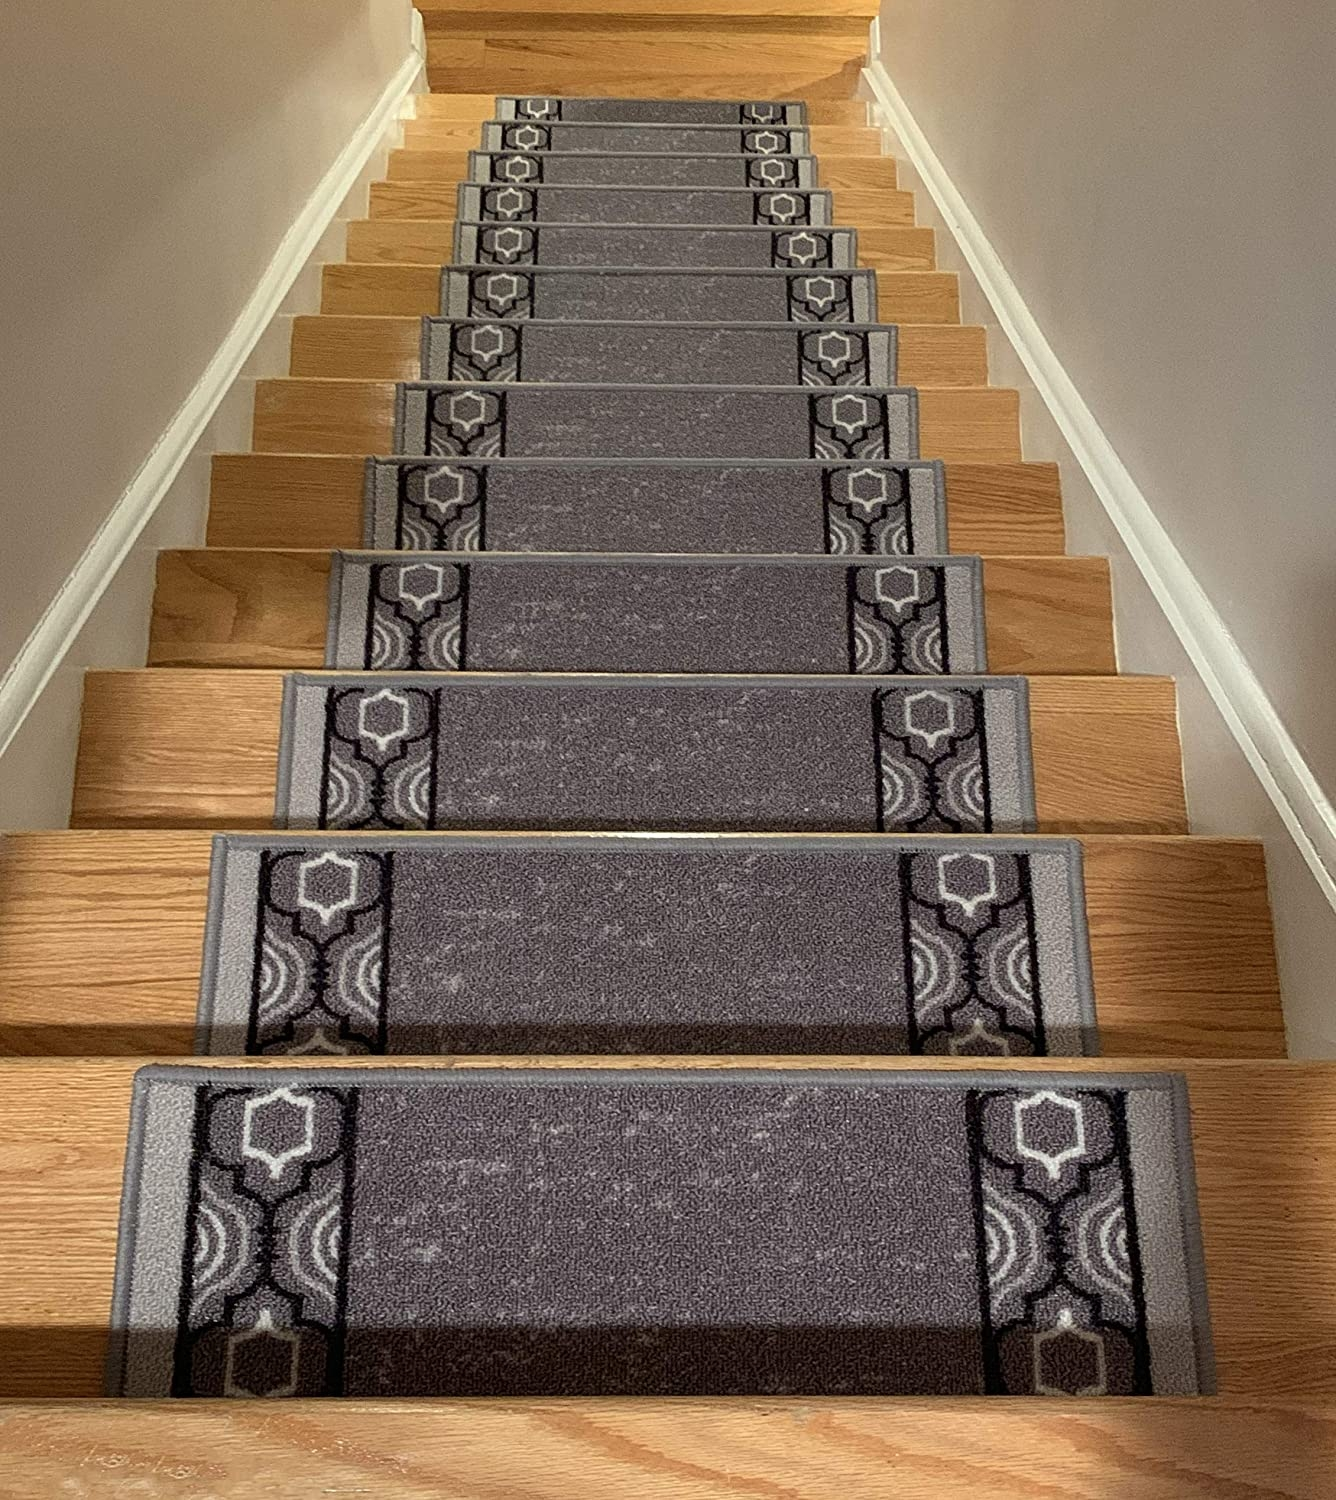 Stair Treads Skid Slip Resistant Backing Indoor Carpet Stair | Carpet On Tread Only | Wood Stairs | Risers | Stair Tread | Hardwood | Staircase